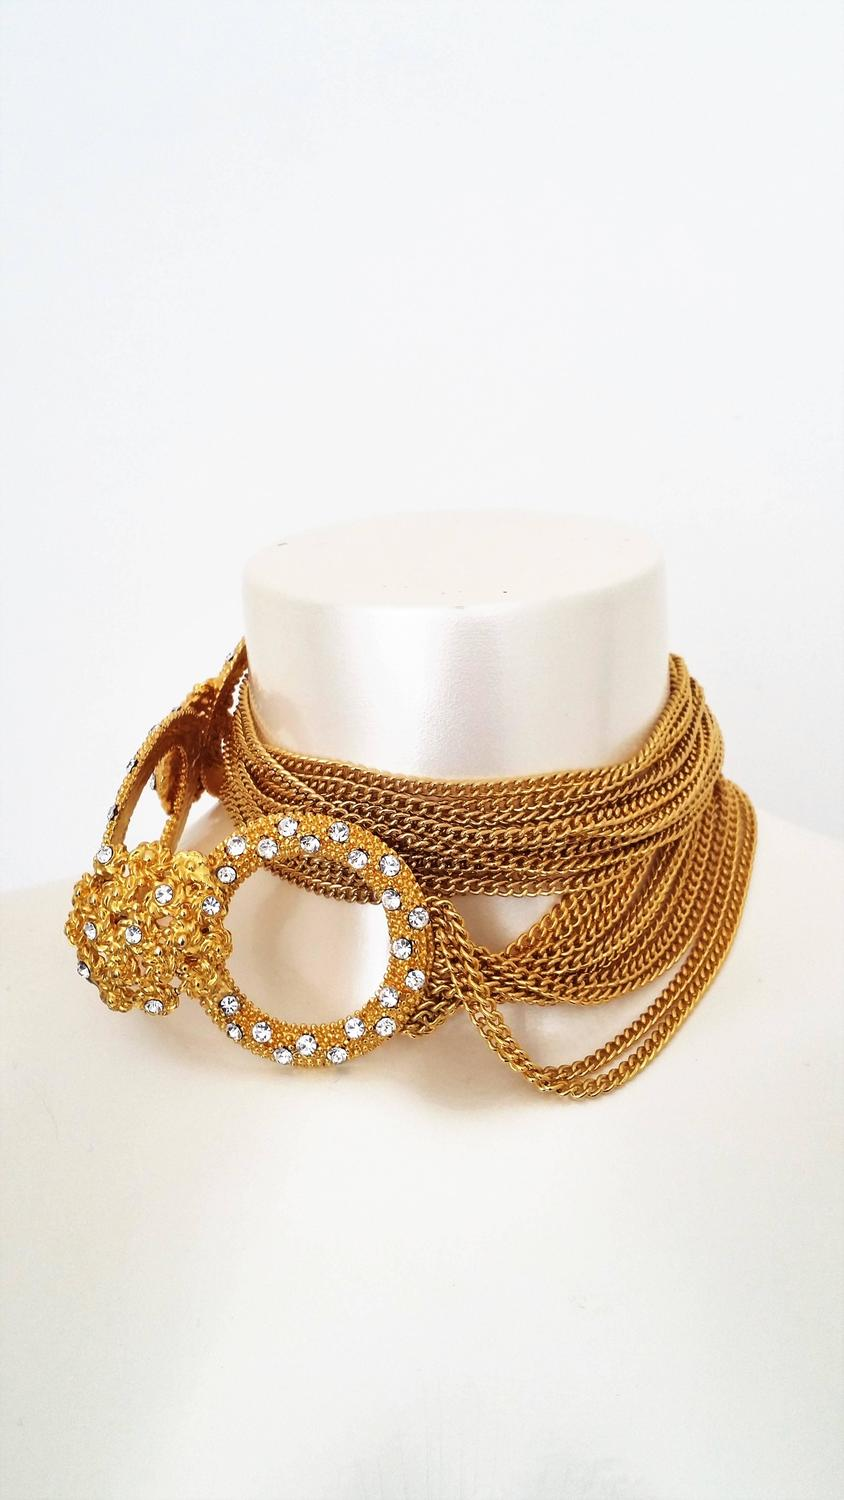 1960s multichain belt / necklace For Sale at 1stdibs